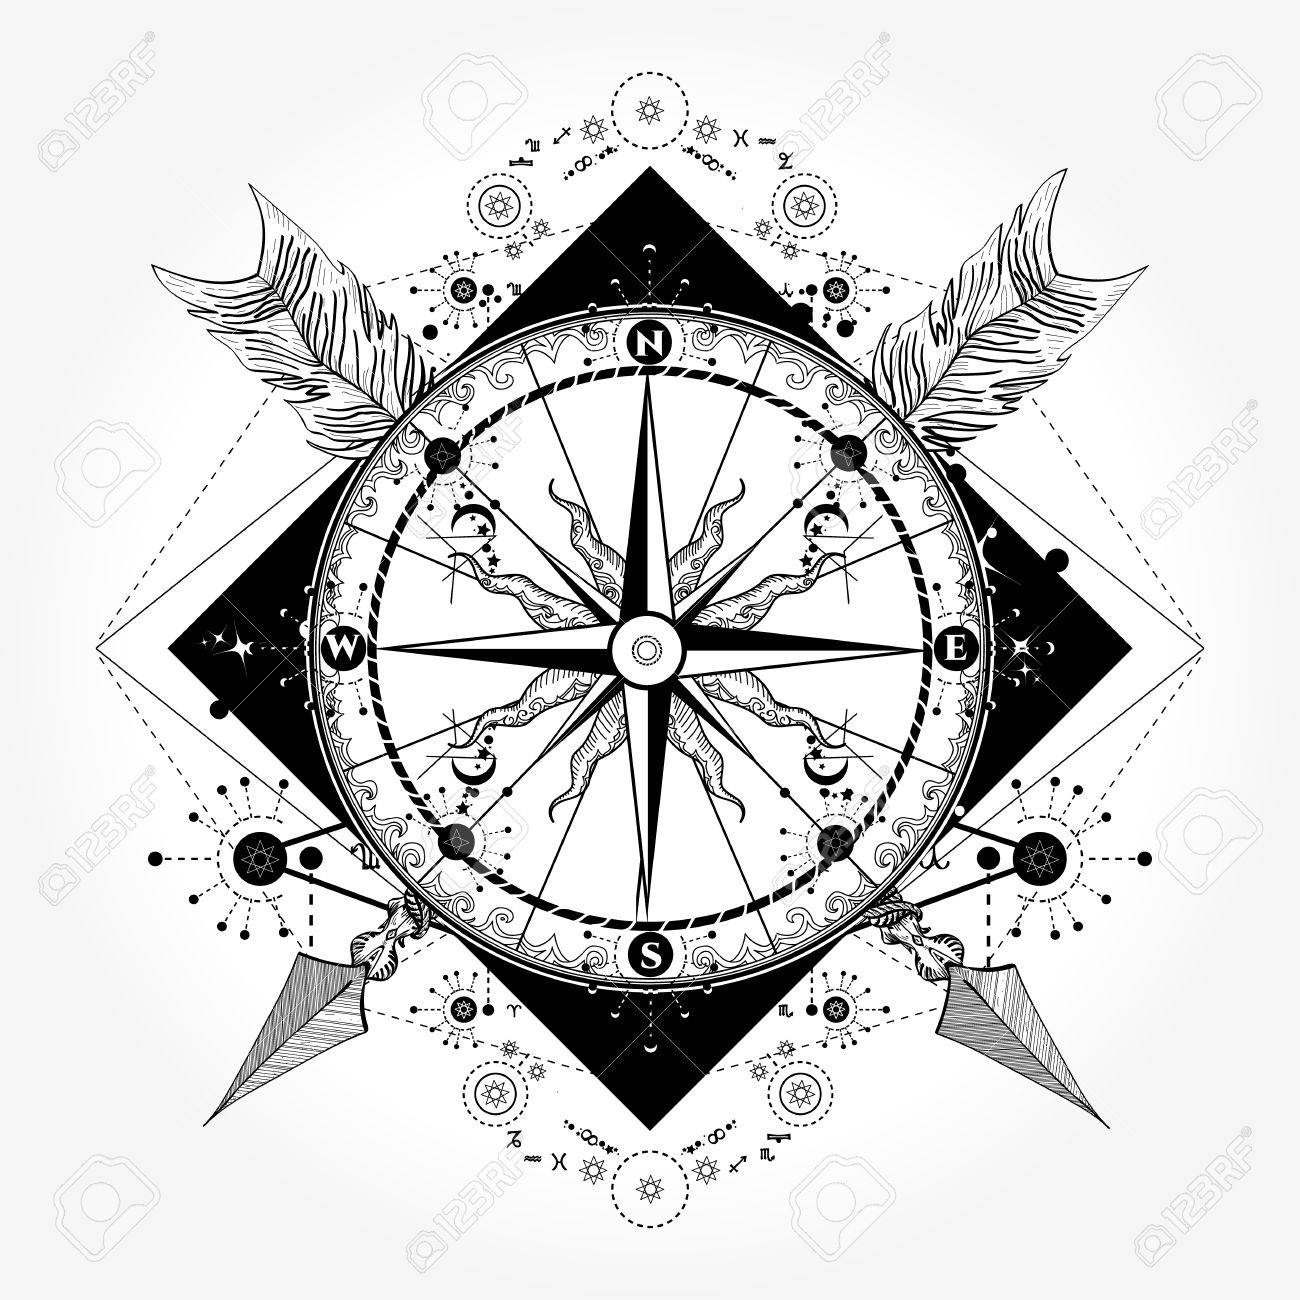 Compass Tattoo And T-shirt Design. Compass And Crossed Arrows ...